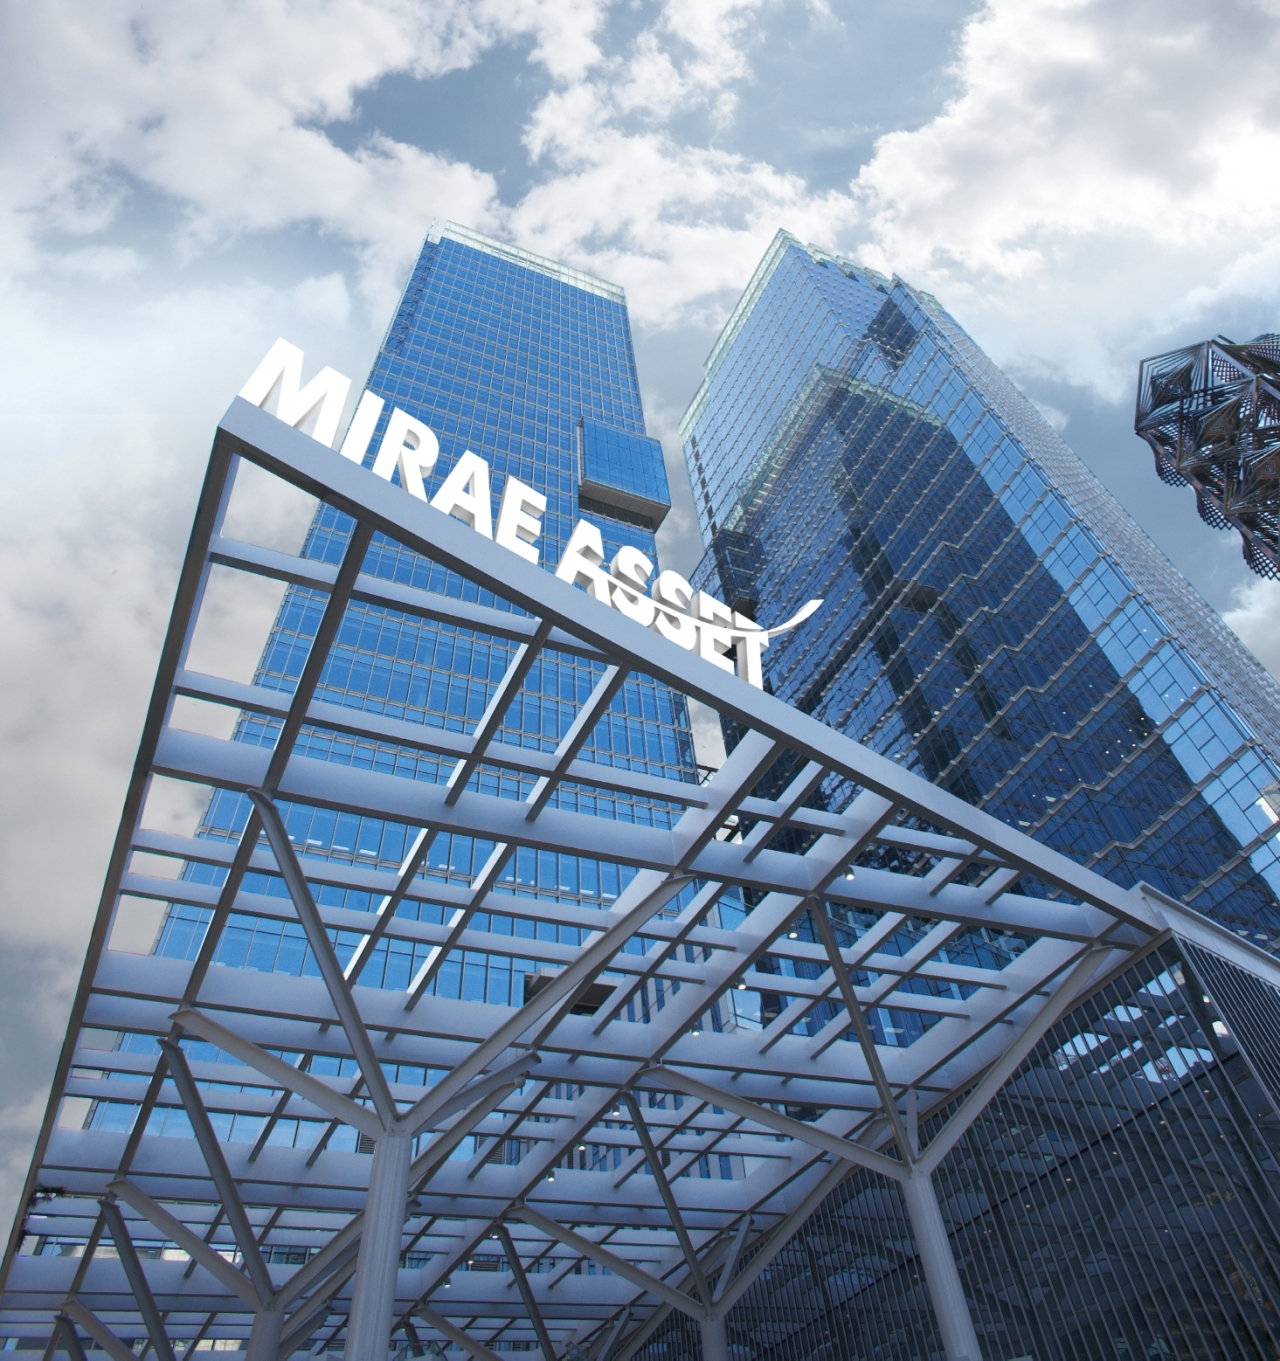 Mirae Asset Financial Group headquarters in Seoul